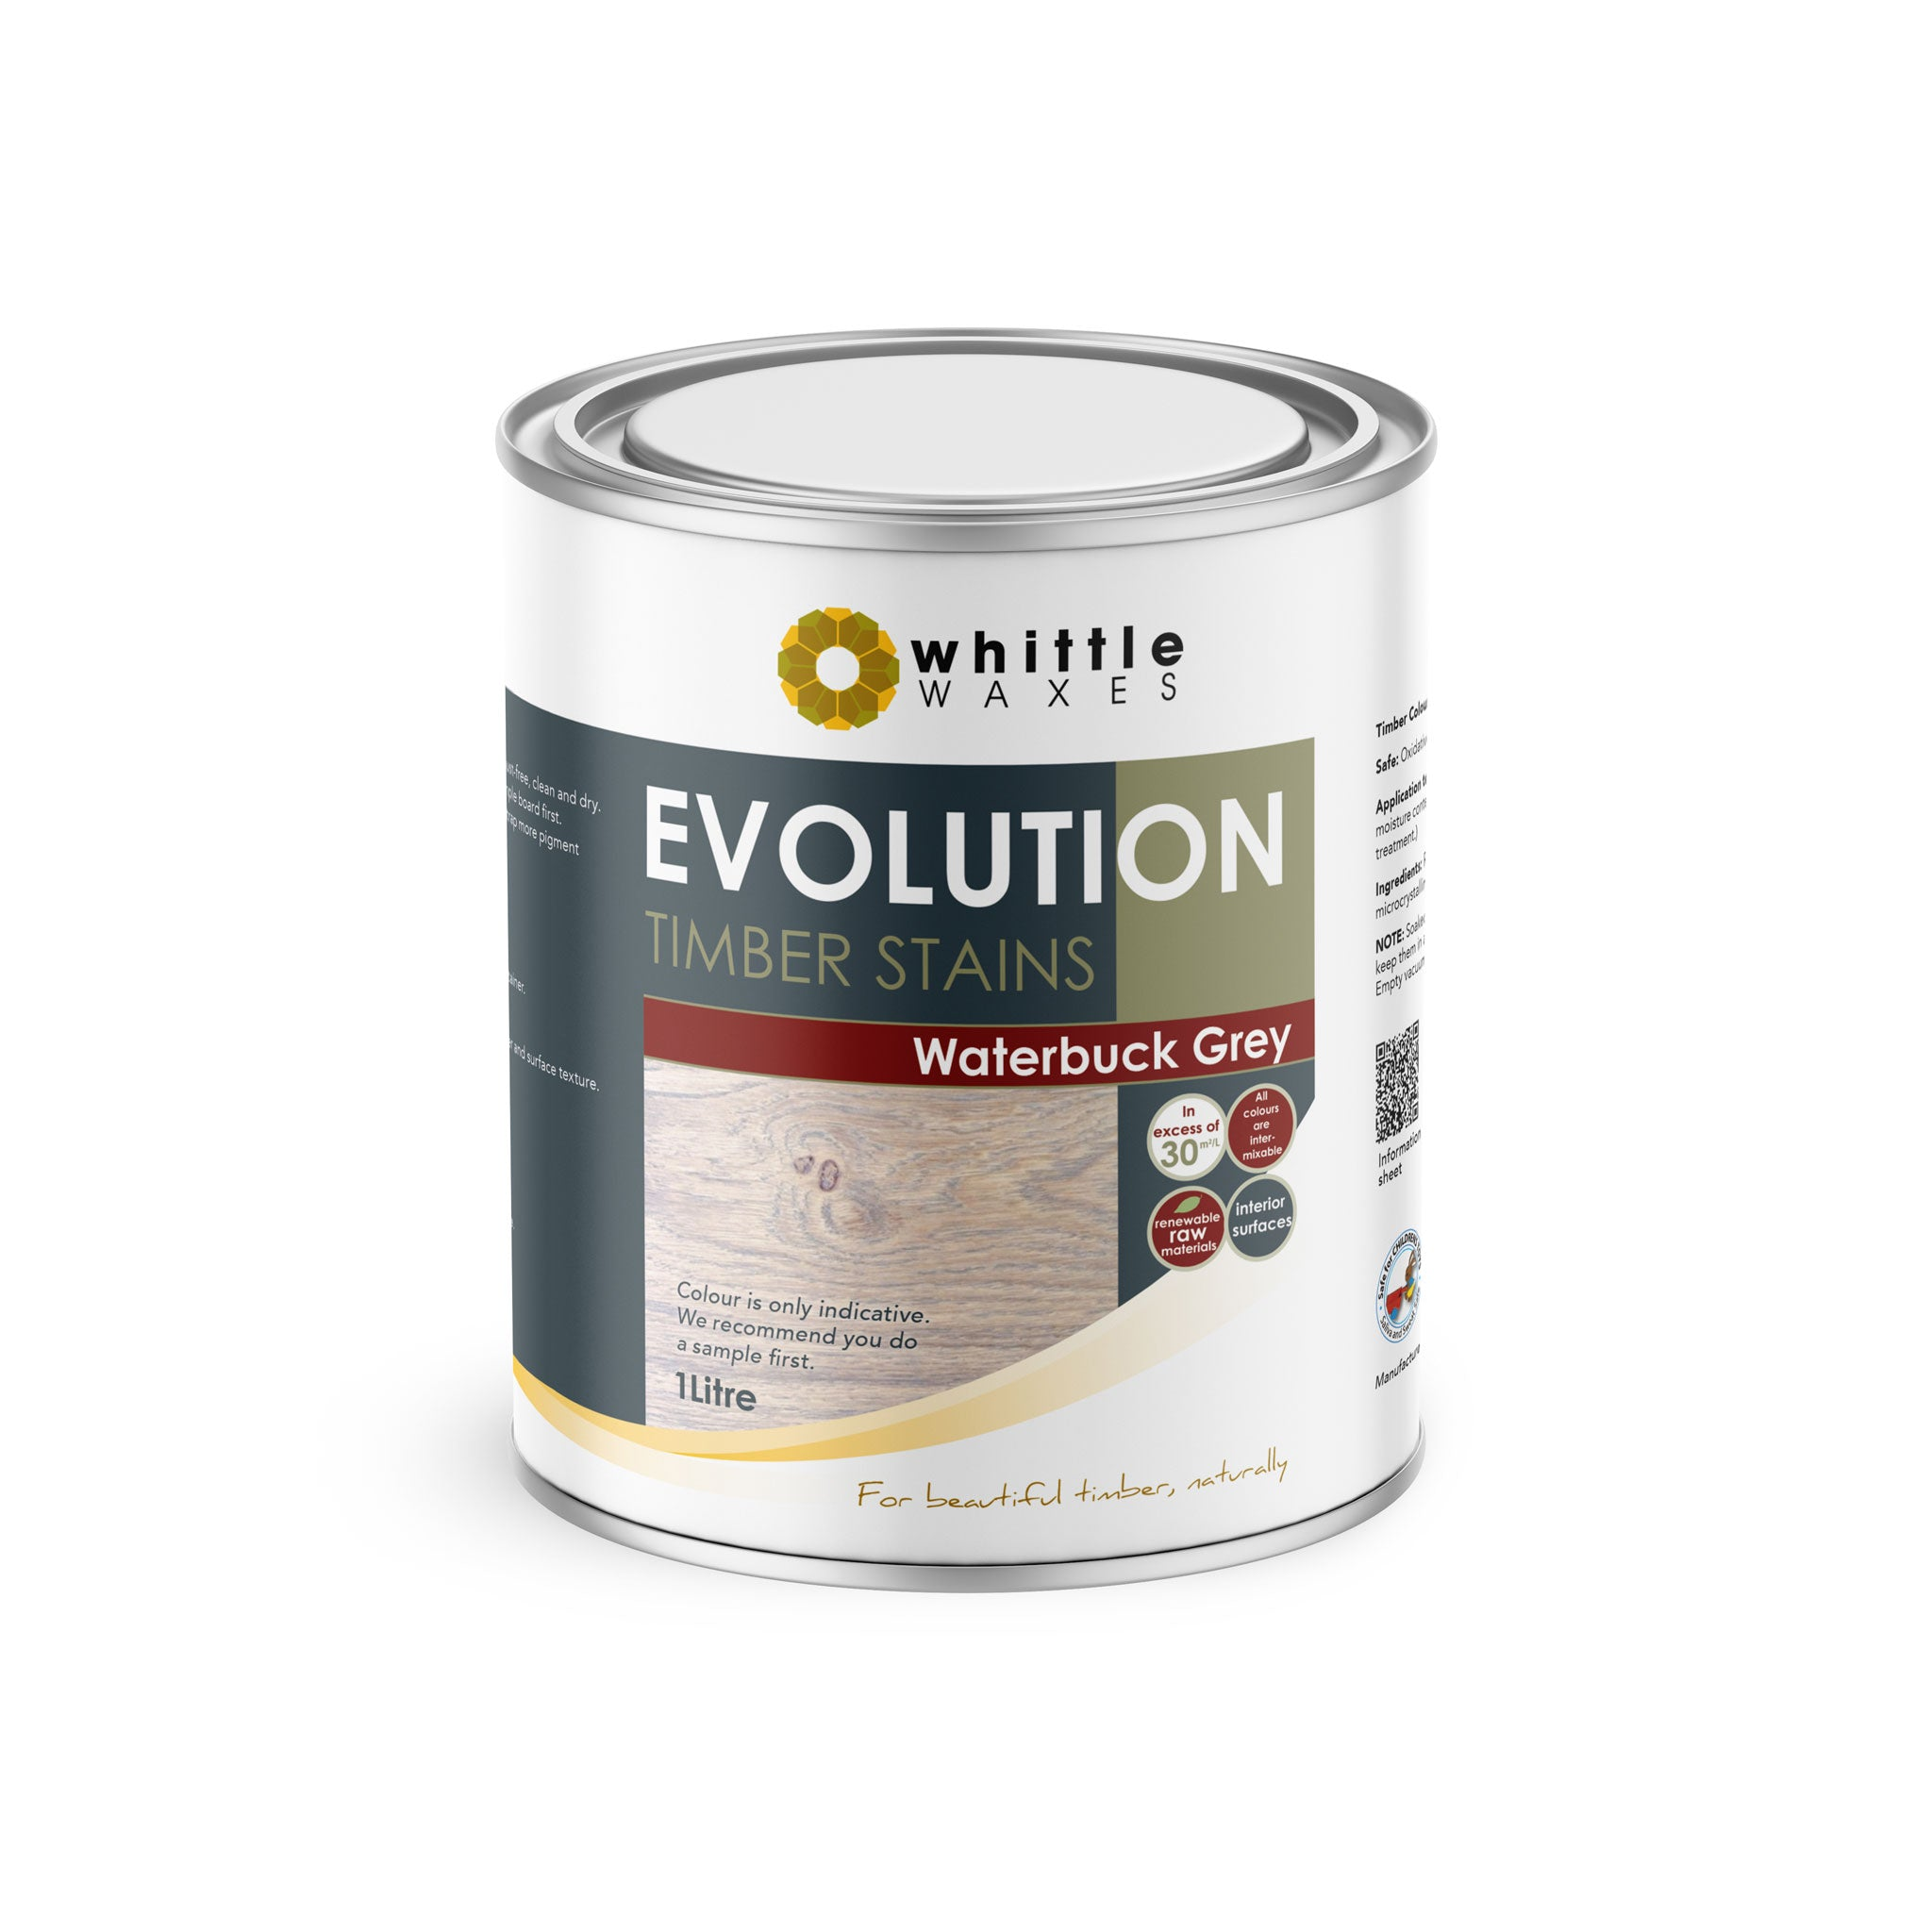 Whittle Waxes Evolution Colours (Waterbuck Grey) - quality timber stain - 1 Litre